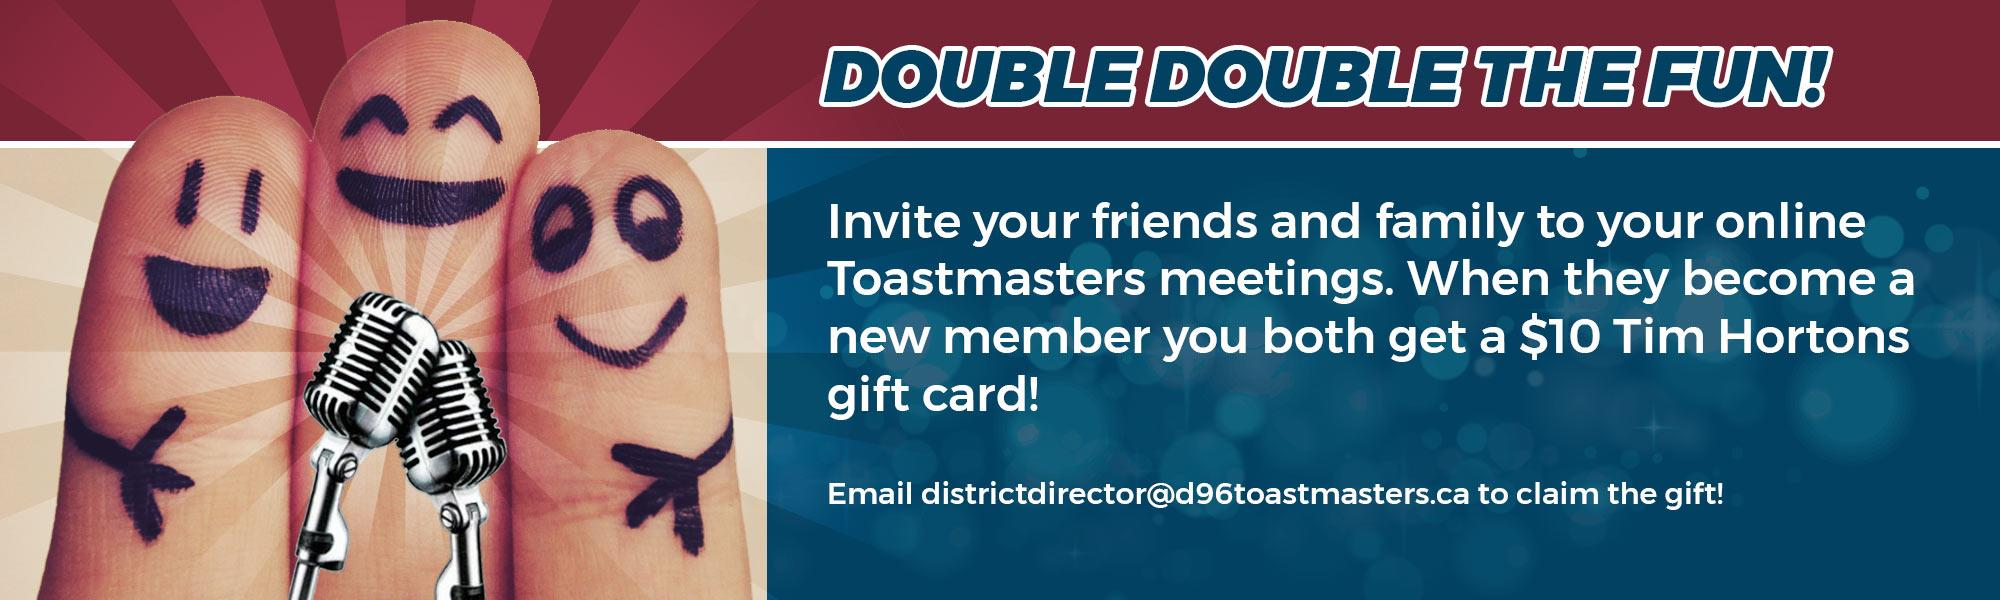 Invite your friends and family to your online Toastmasters meetings. When they become a new member you both get a $10 Tim Hortons gift card!  Email districtdirector@d96toastmasters.ca to claim